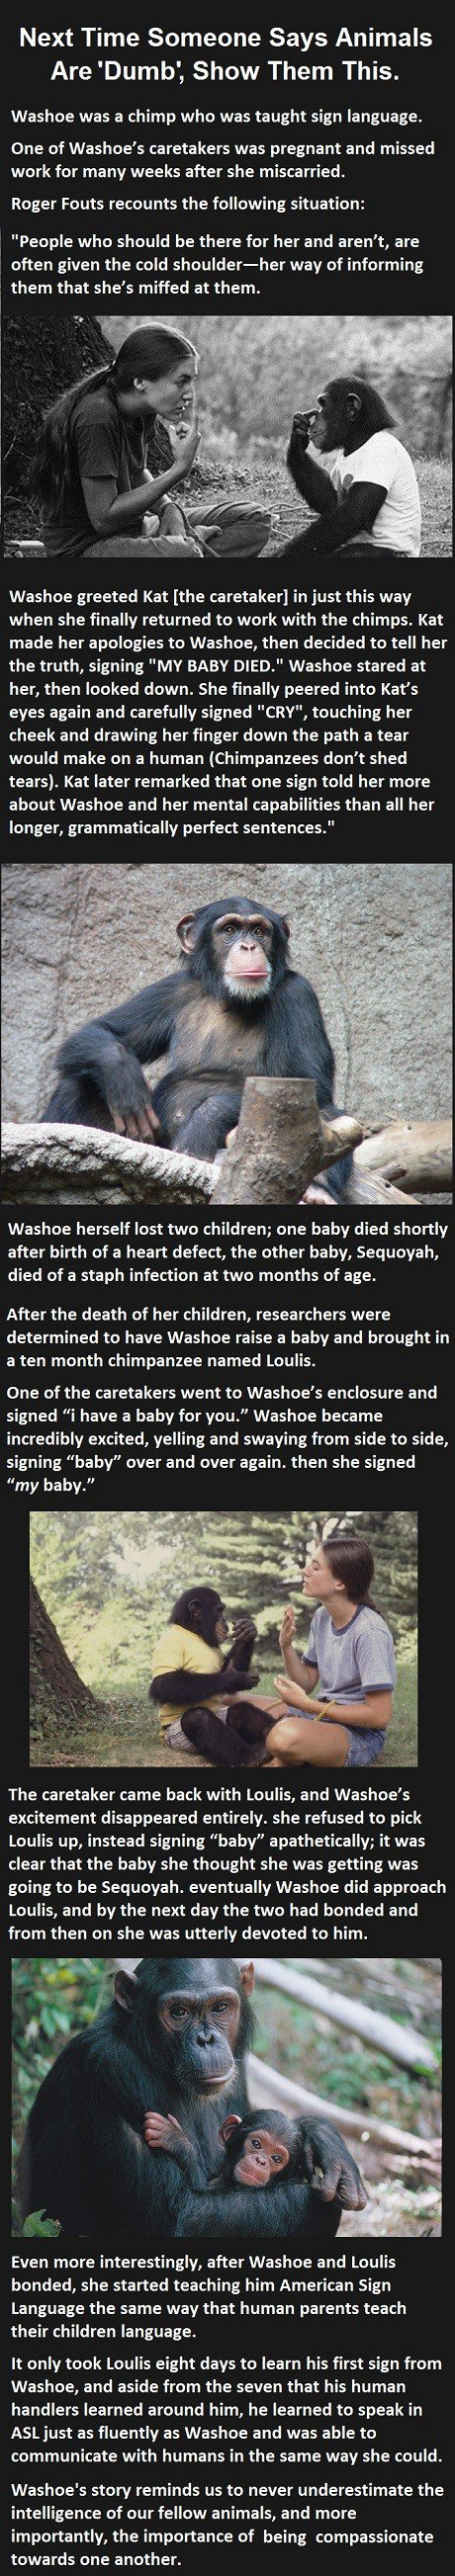 She Told The Chimp She Had Lost Her Baby. What The Chimp Did Next Was Unexpected.